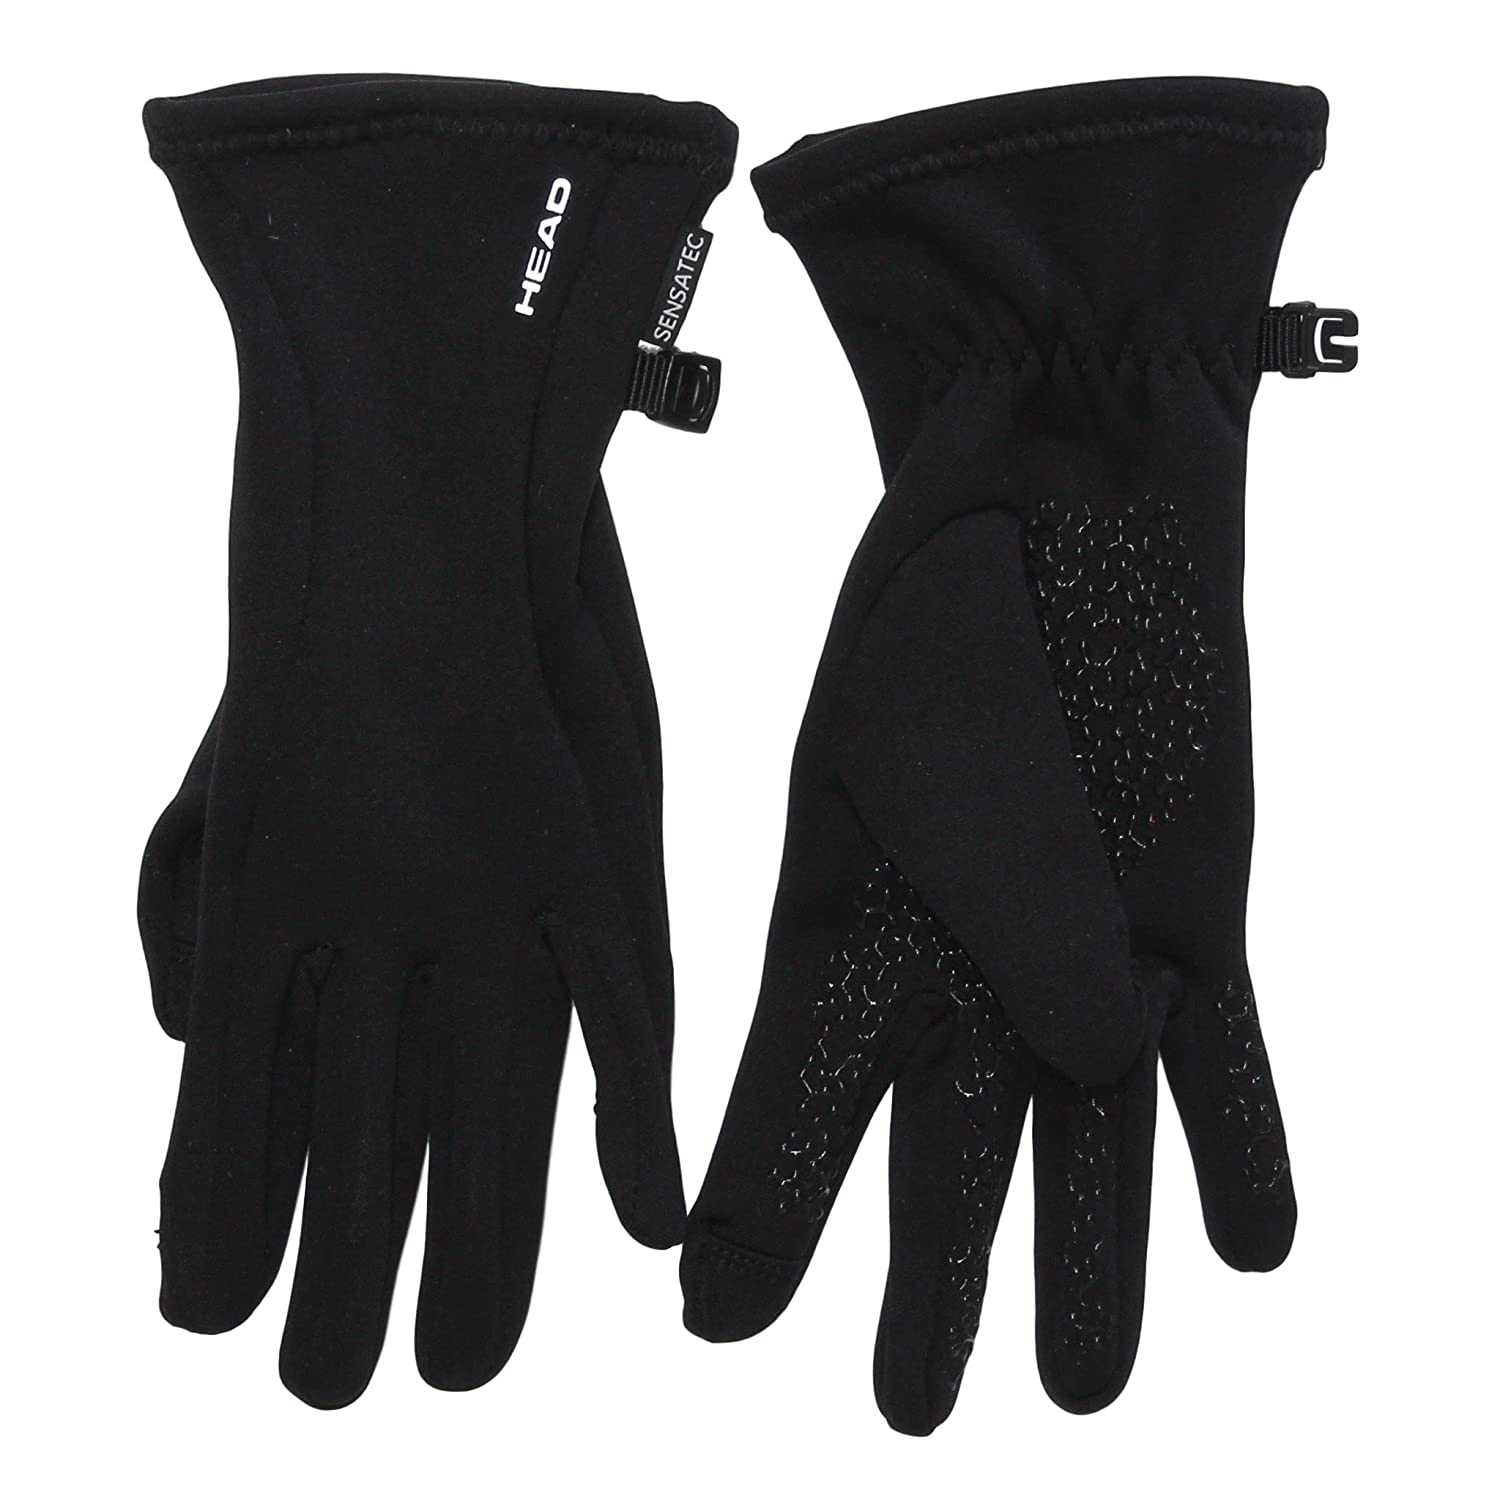 Head Ladies' Digital Sport Running Glove - Black (SMALL) all-season